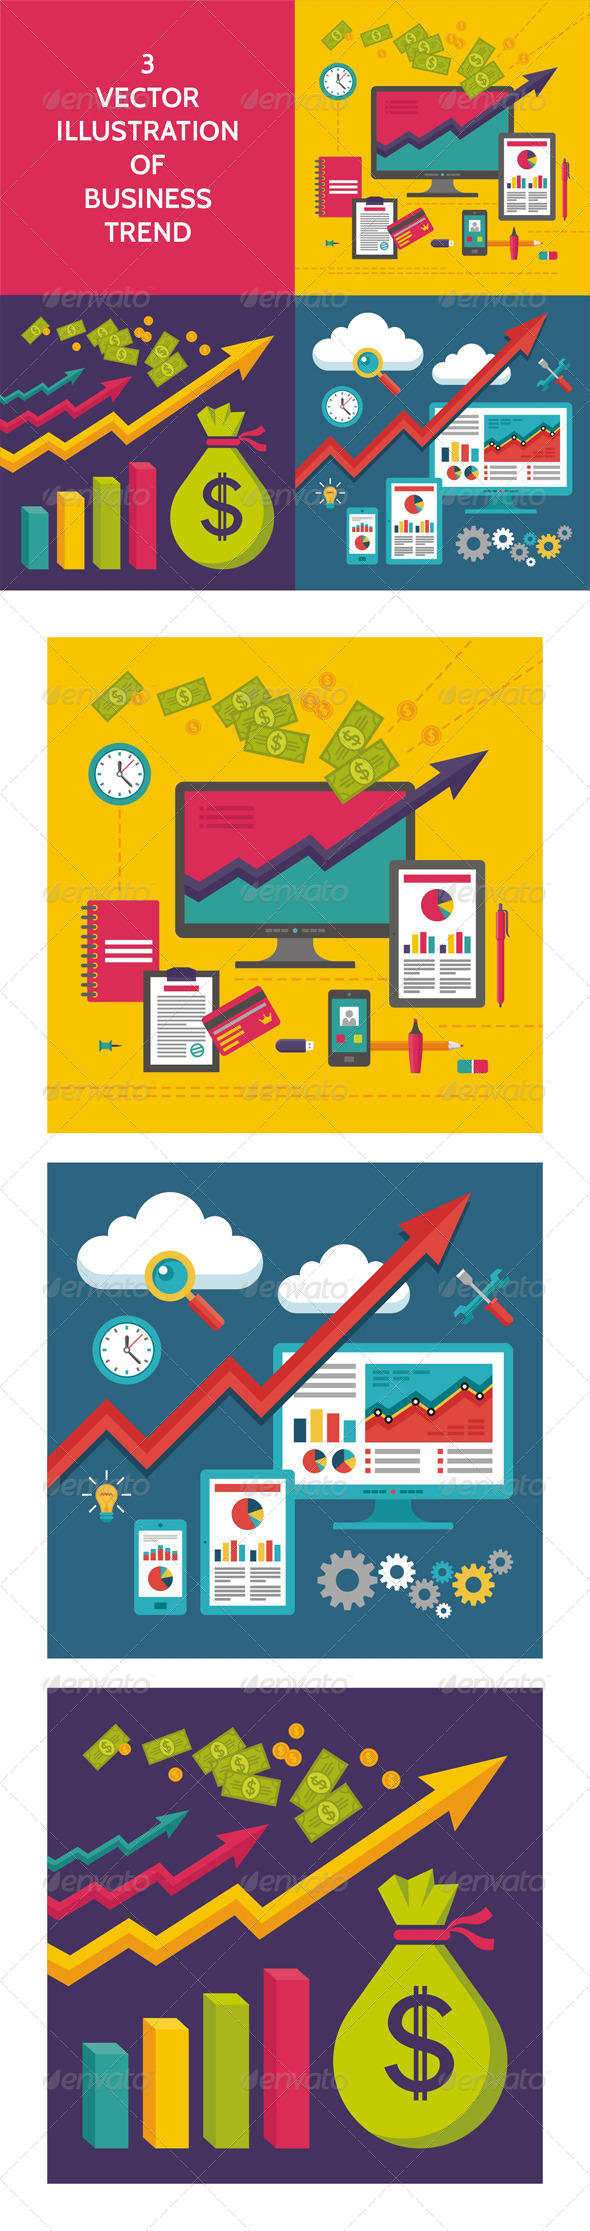 GraphicRiver 3 Business Trend Illustration in Flat Design Style 7927704